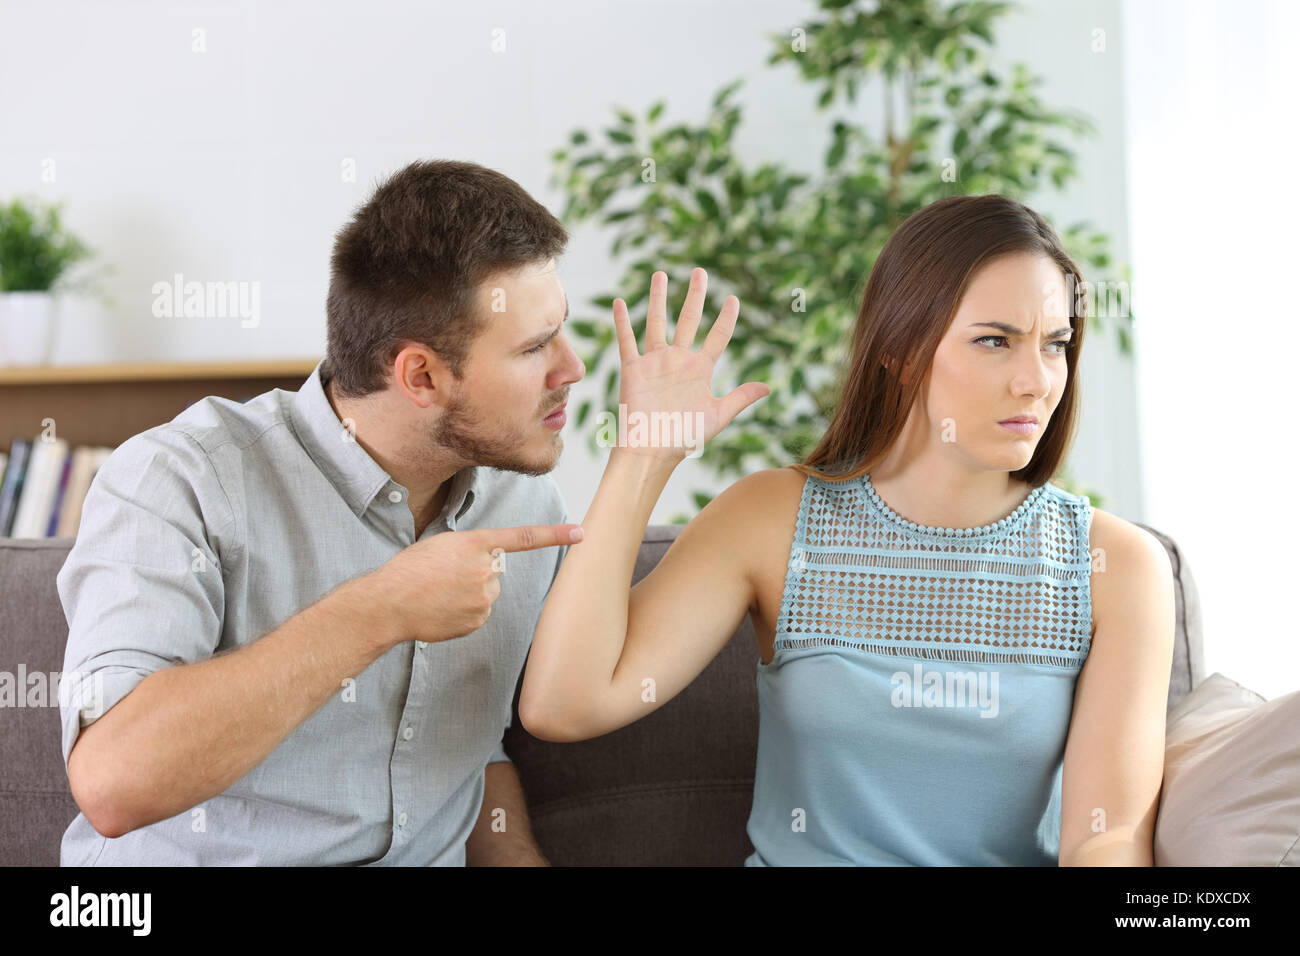 Angry couple fighting sitting on a couch at home - Stock Image